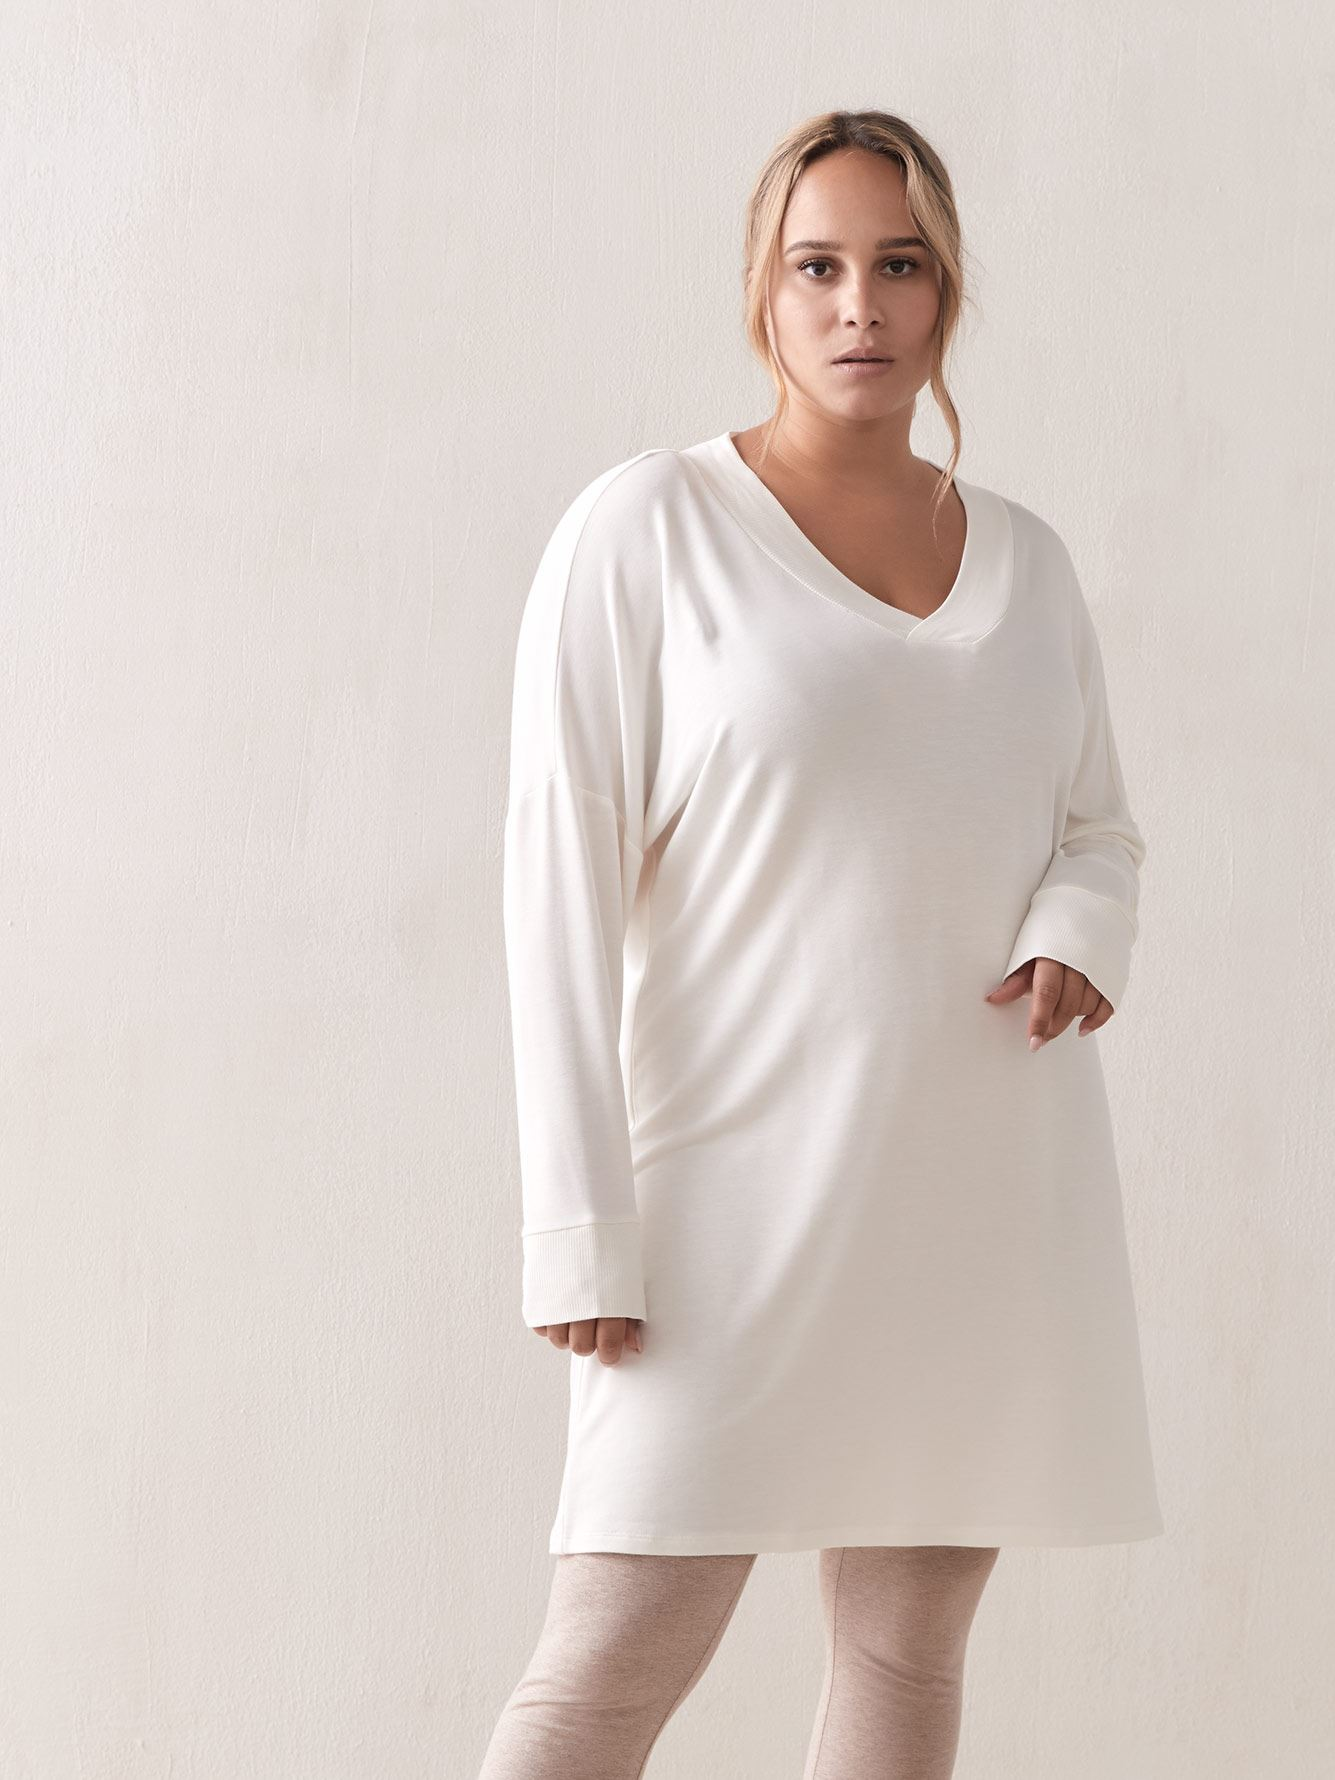 French Terry PJ Top with Long Sleeves - Addition Elle